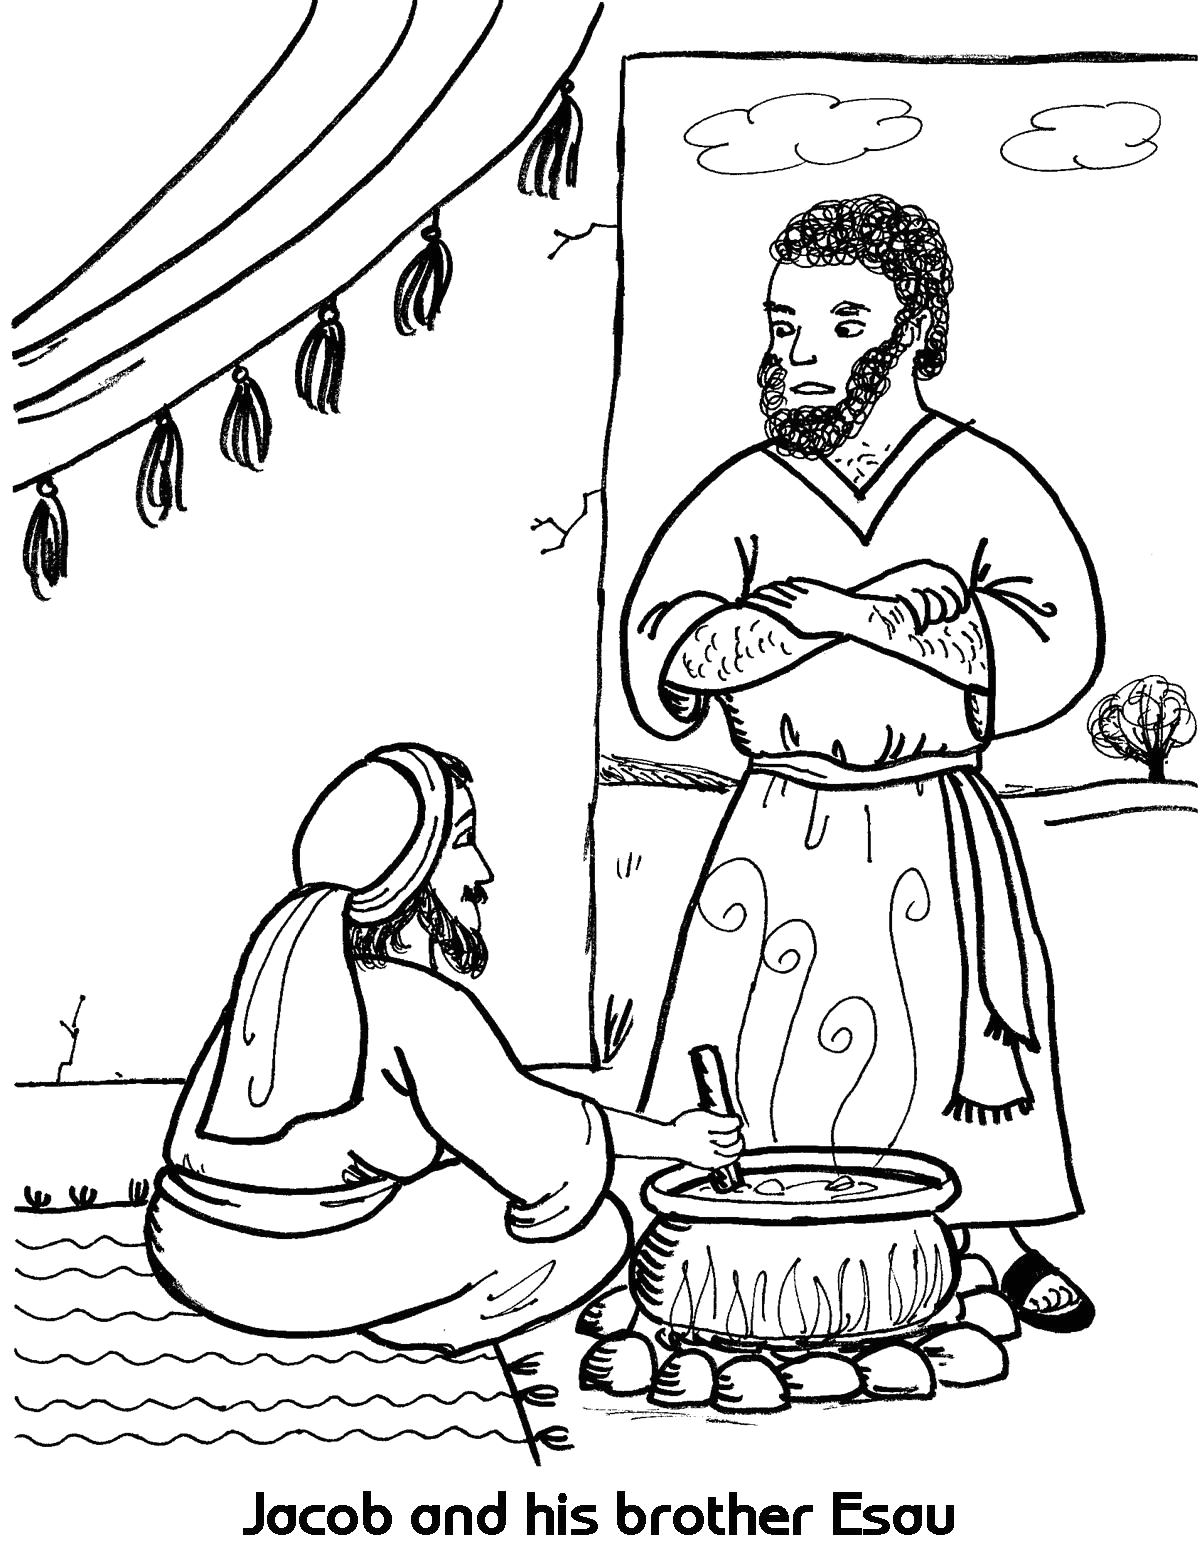 Jacob and Esau Bible Story Coloring Pages Jacob and Esau Coloring Pages Best Coloring Pages for Kids